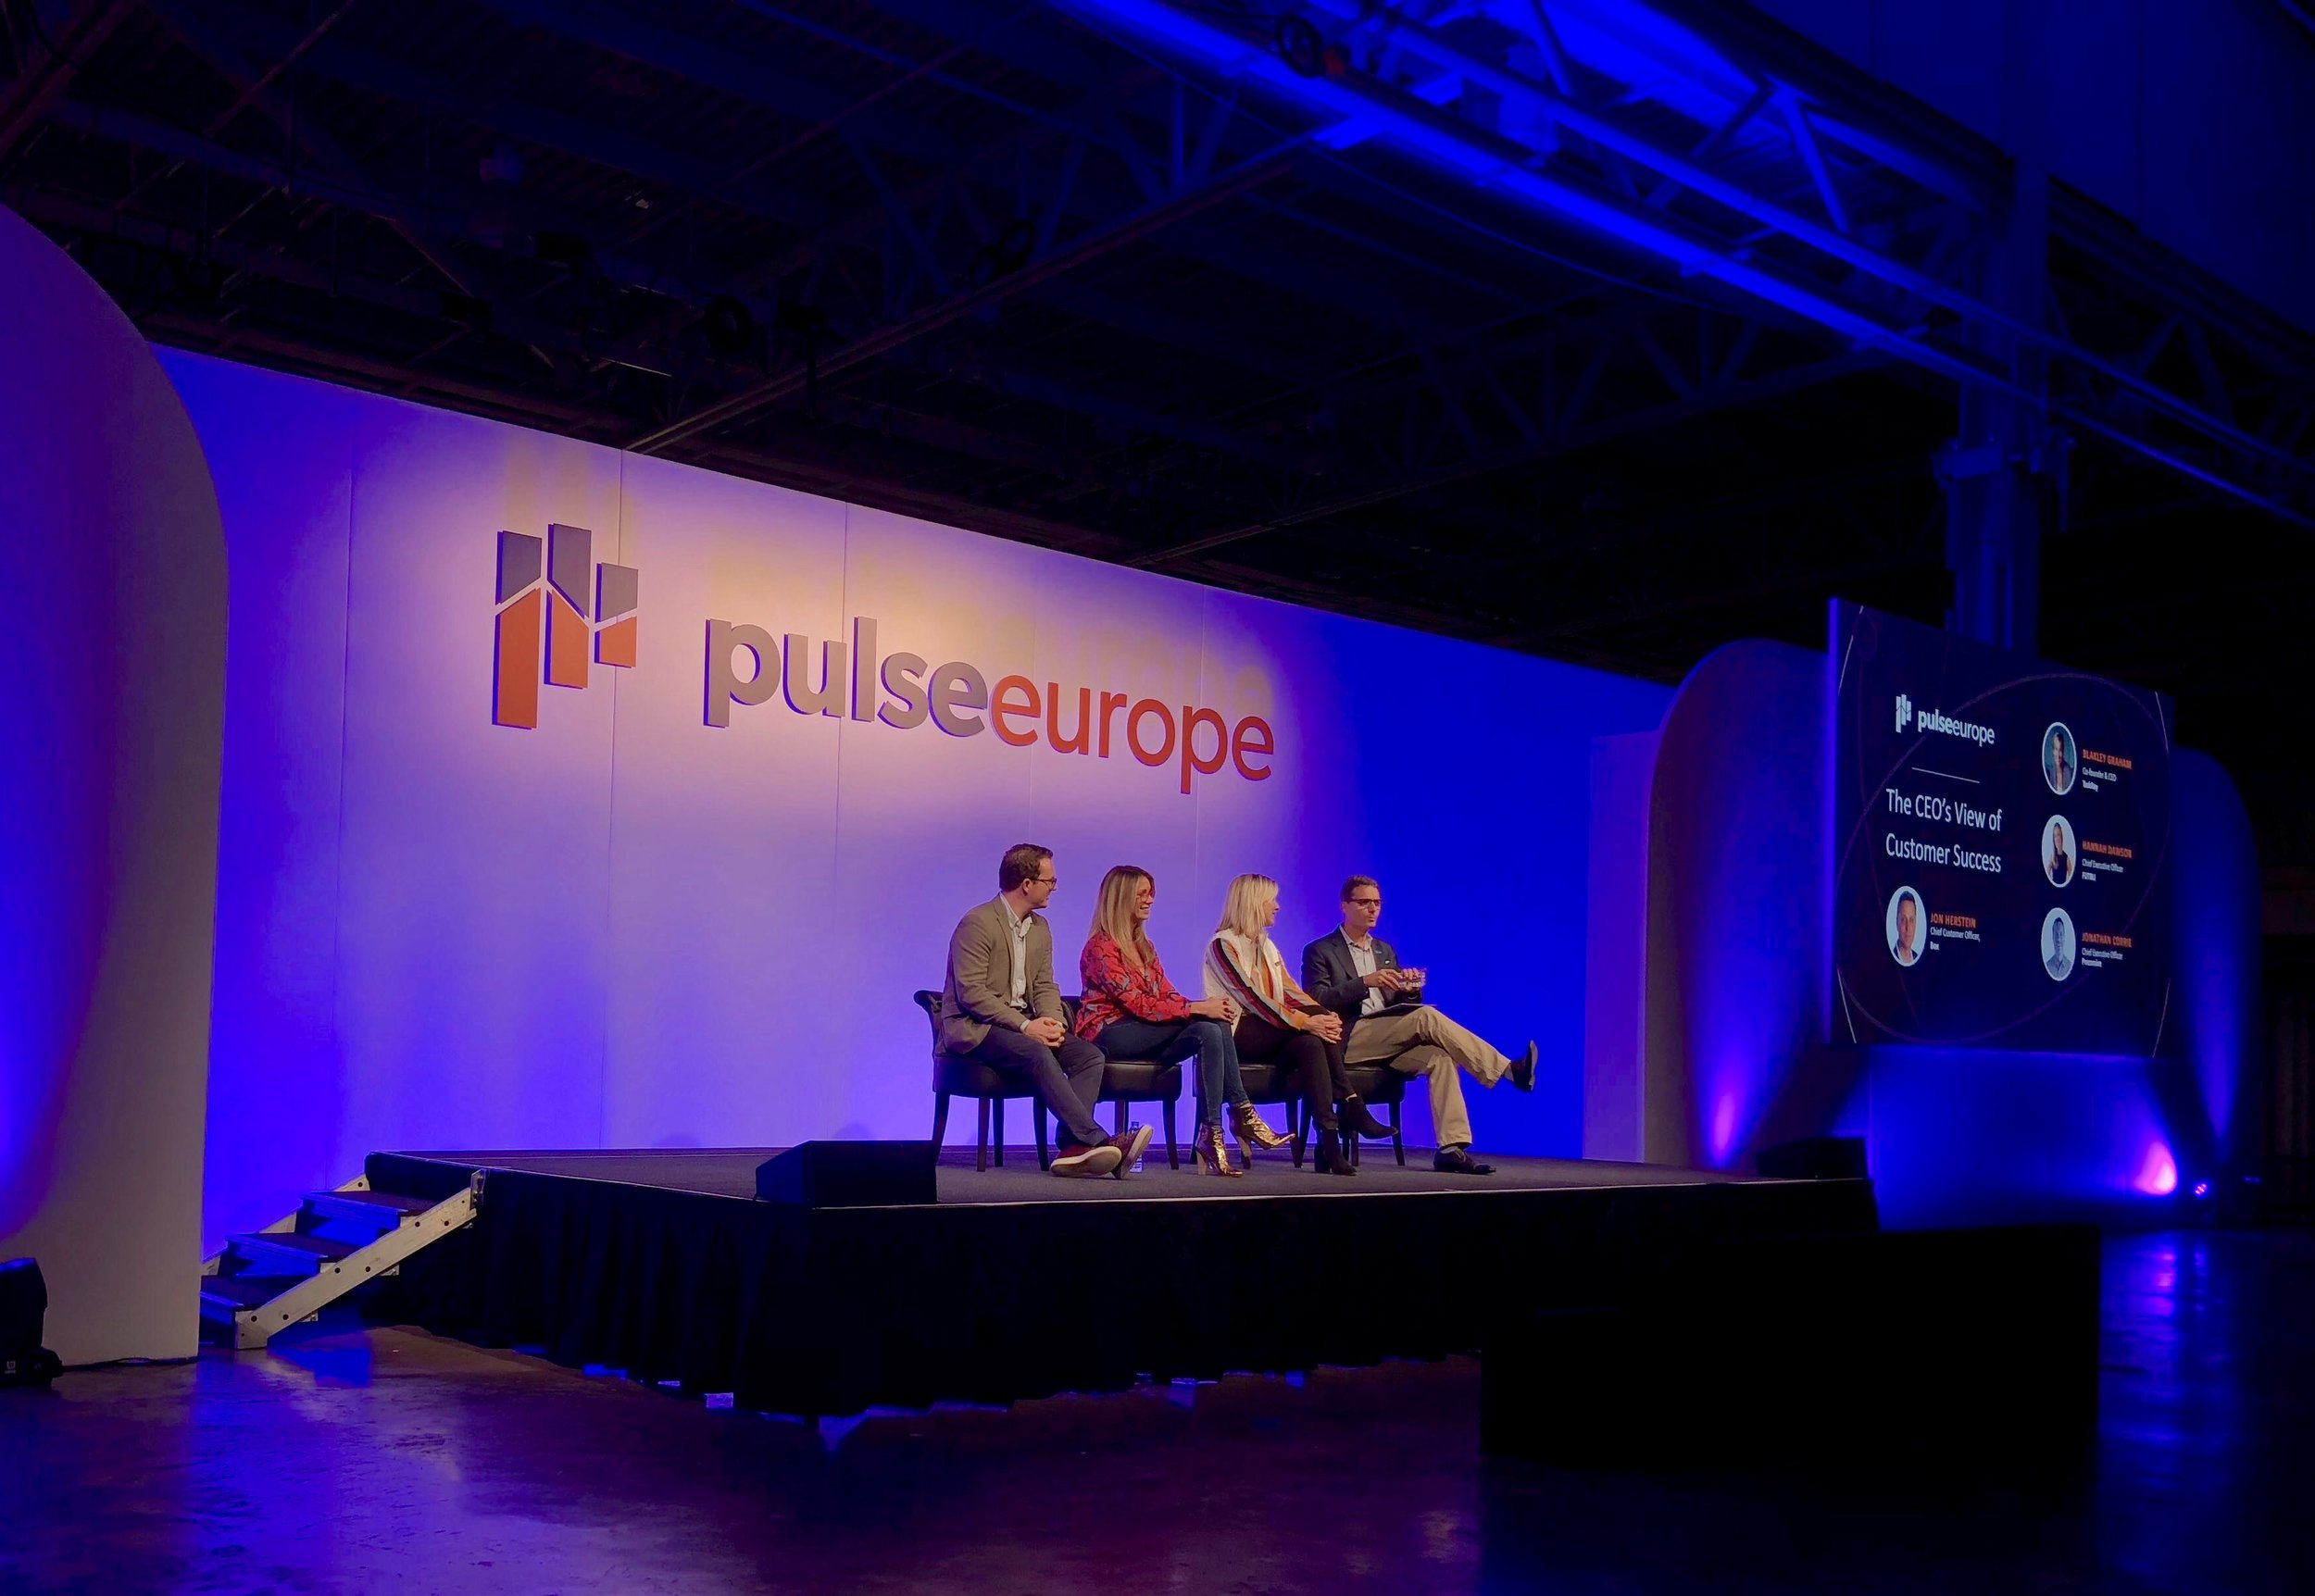 TaskRay CEO Blakely Graham sharing perspectives on Customer Success with the Pulse Europe audience.